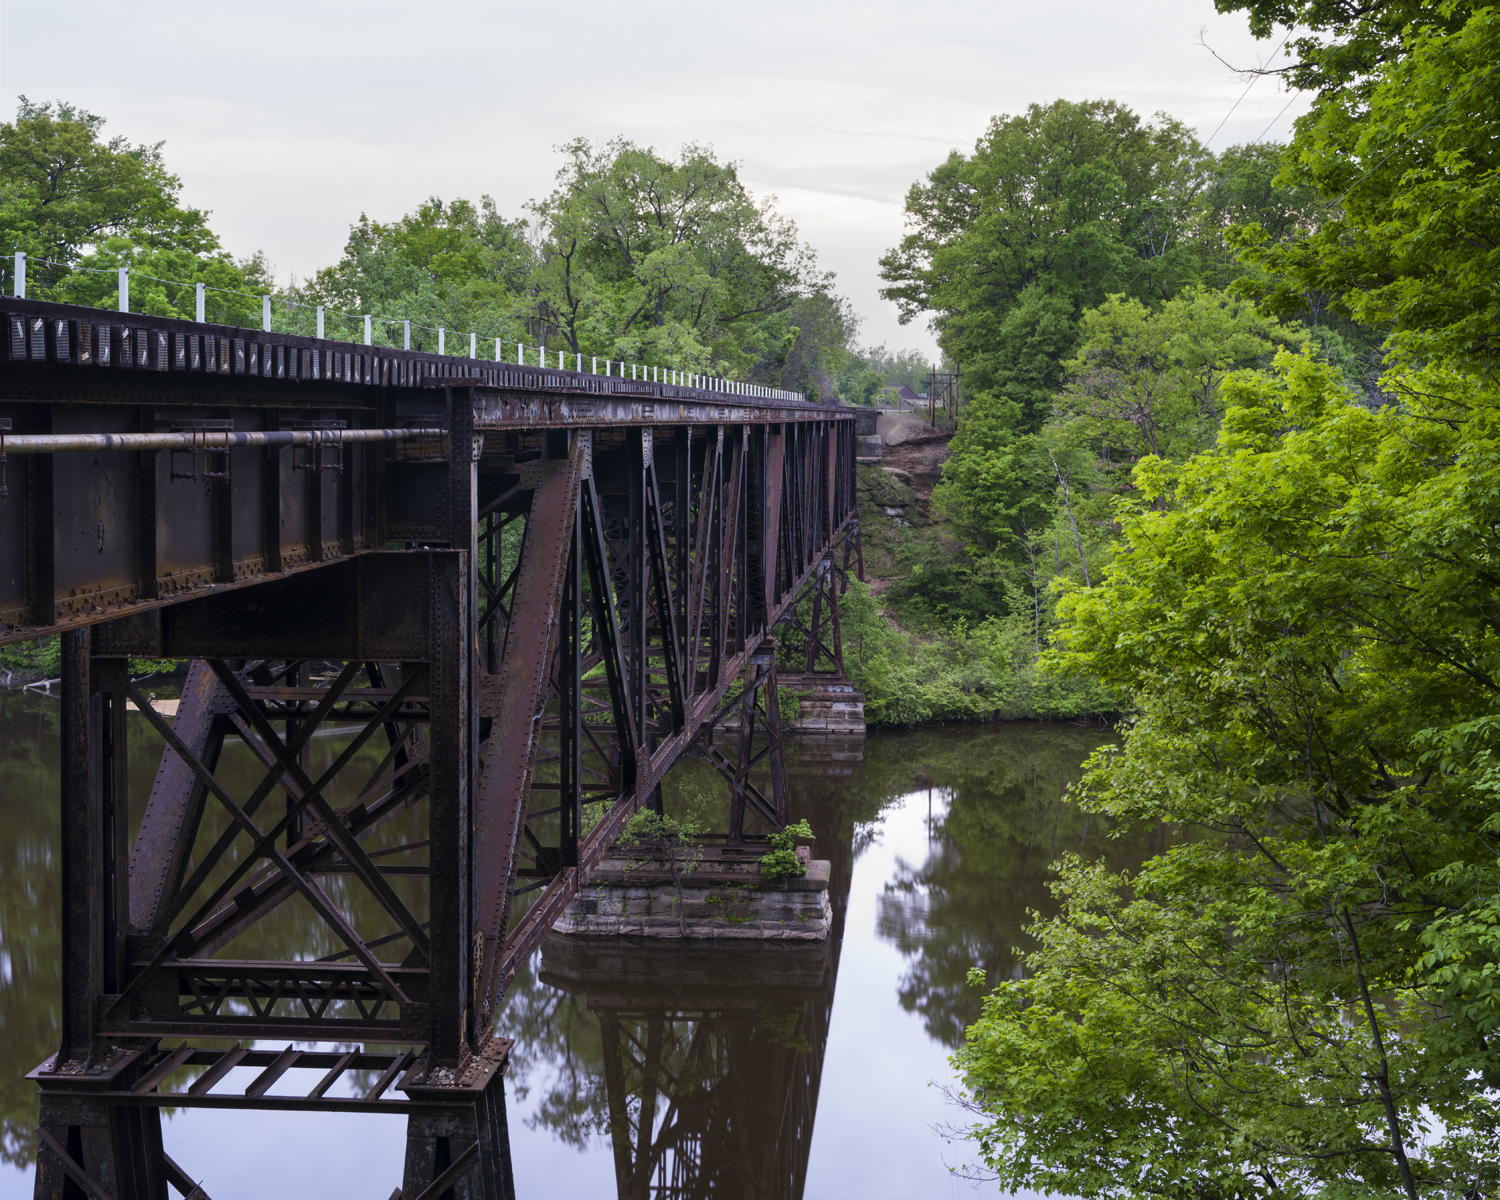 Train bridge over the Grand River near Grand Ledge, MI. 2014